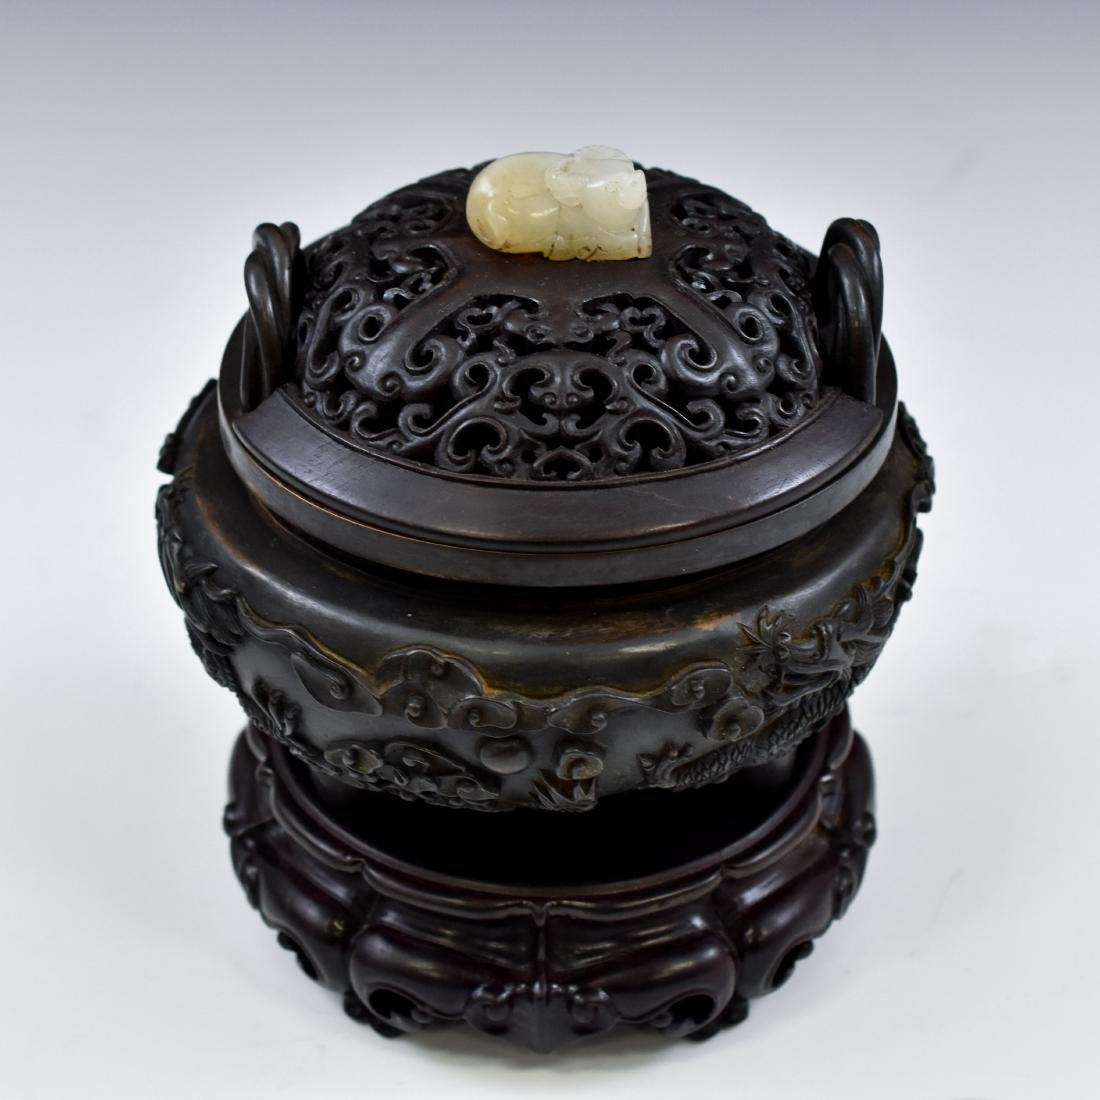 MING BRONZE DRAGON TRIPOD CENSER WITH JADE FINIAL - 2